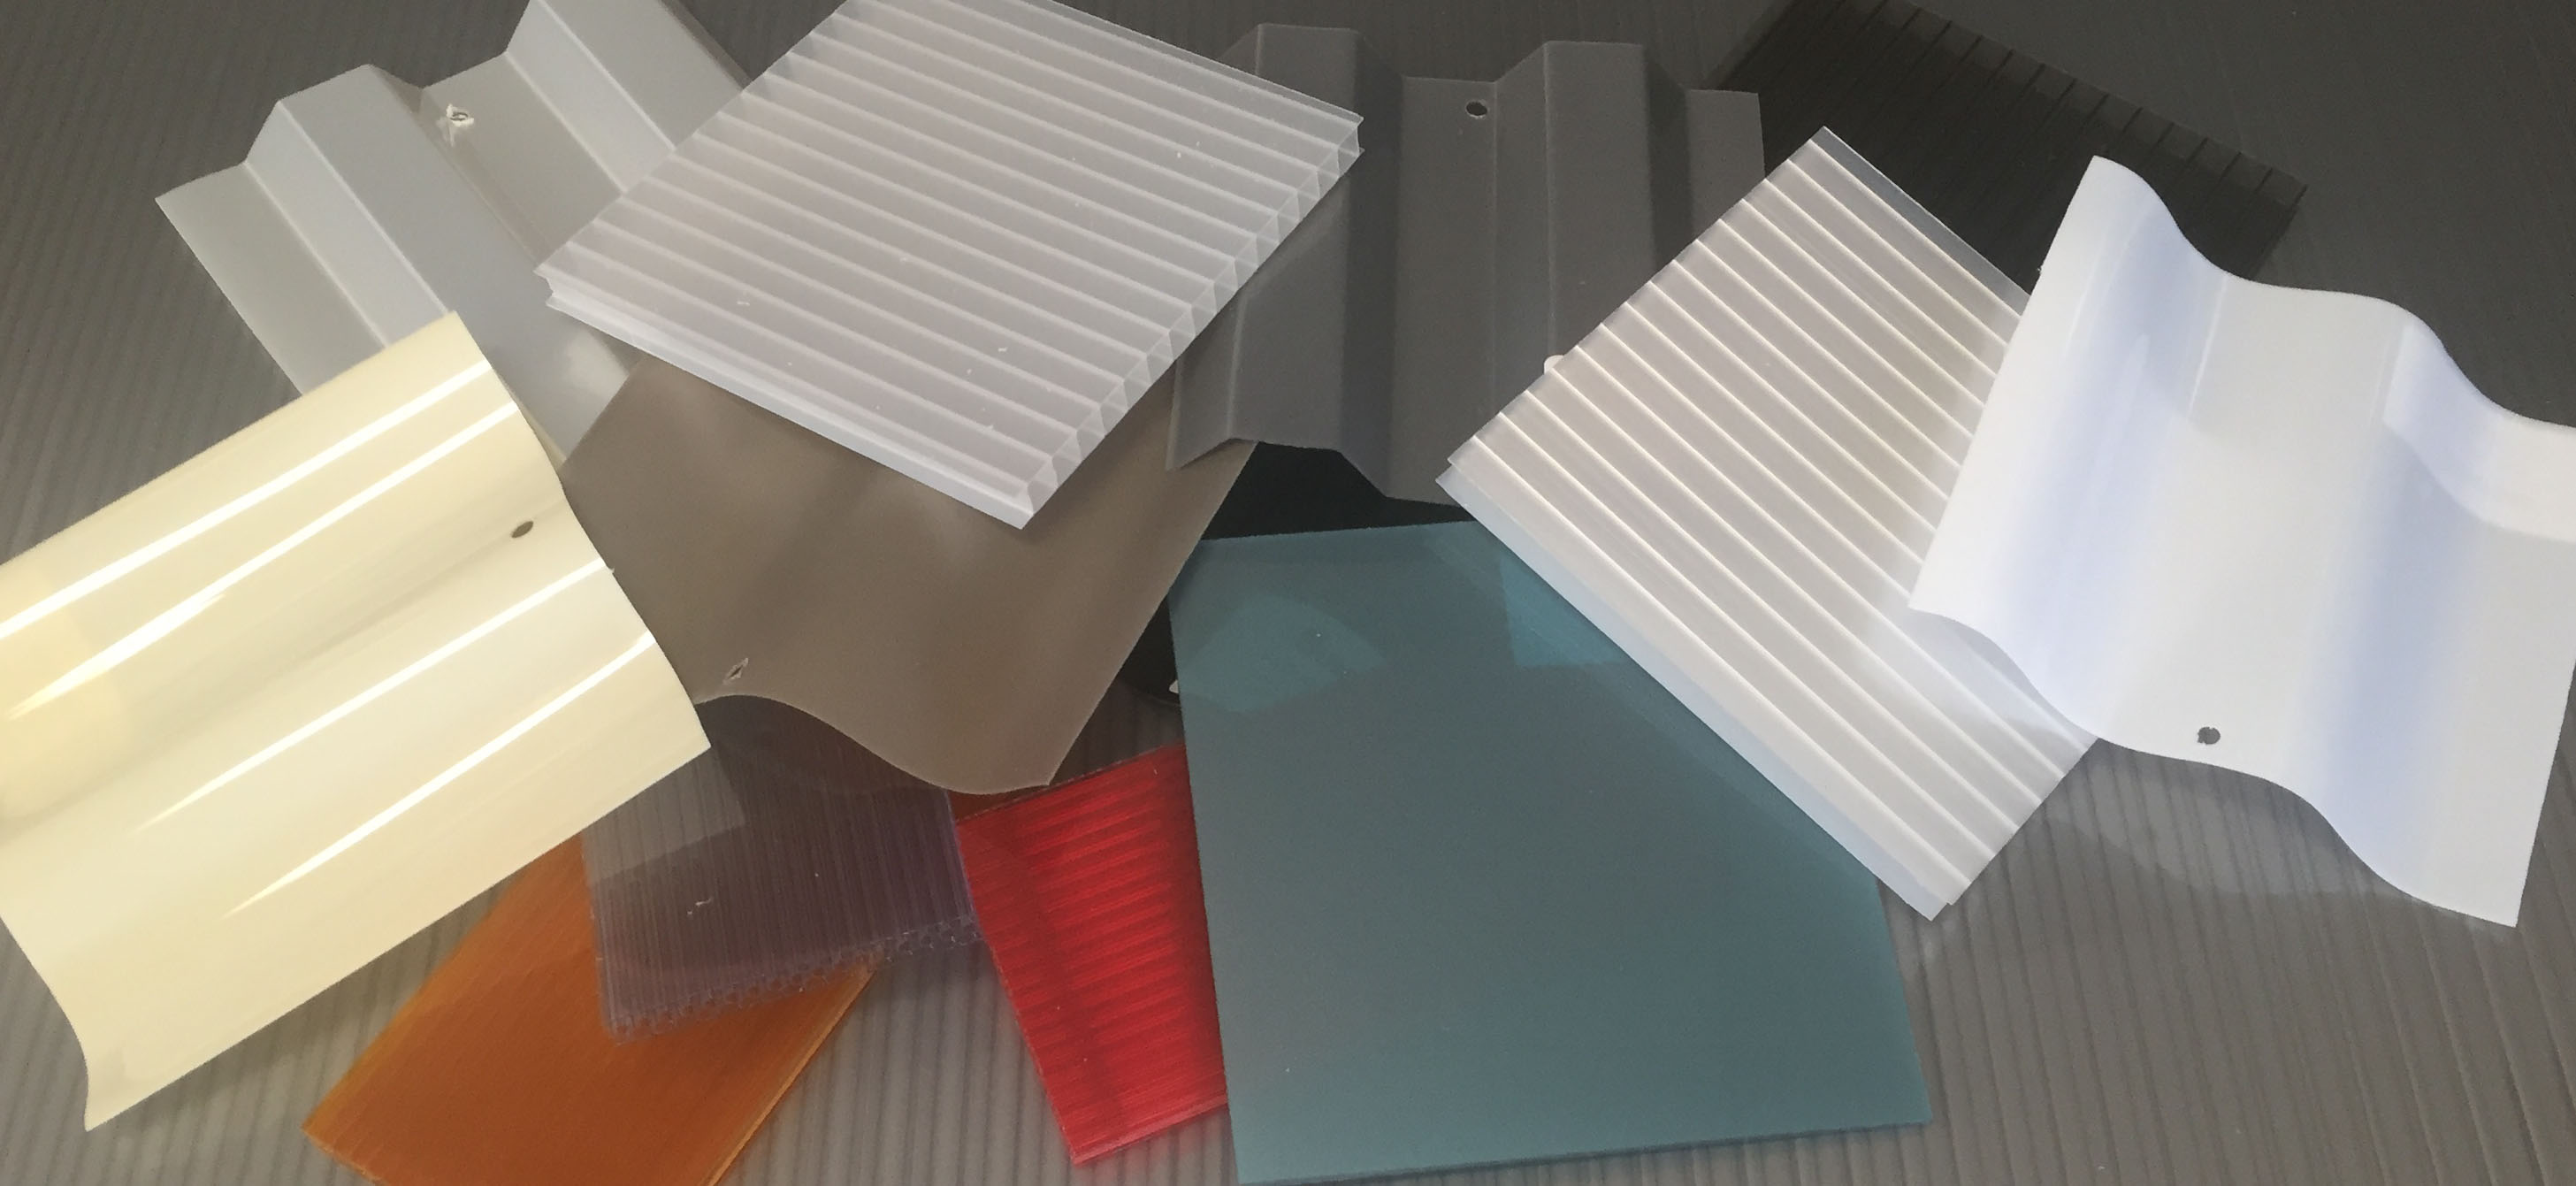 Choosing Polycarbonate Colours - Polycarbonate Roofing